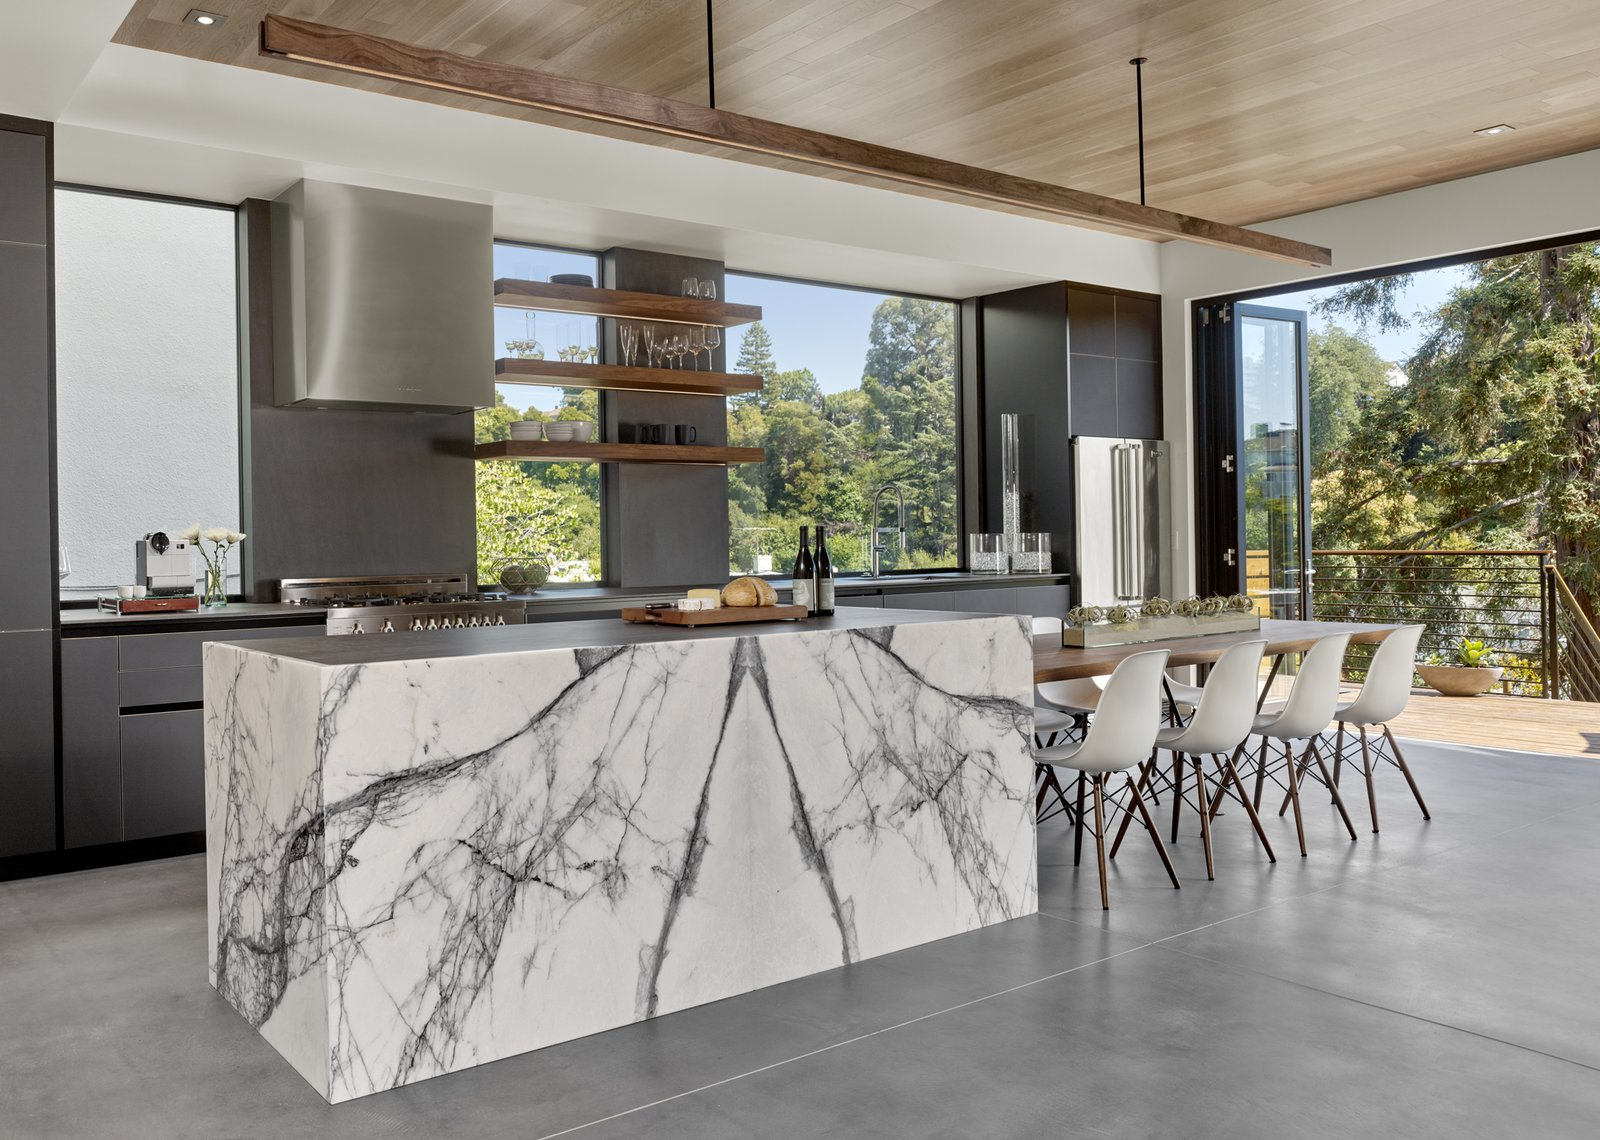 Kitchen, Range Hood, Refrigerator, and Marble Counter The cabinets are black matte glass by Leicht. The floating walnut table, shelves and light are by Matt Eastvold.  Trestle Glen Modern by Knock Architecture + Design